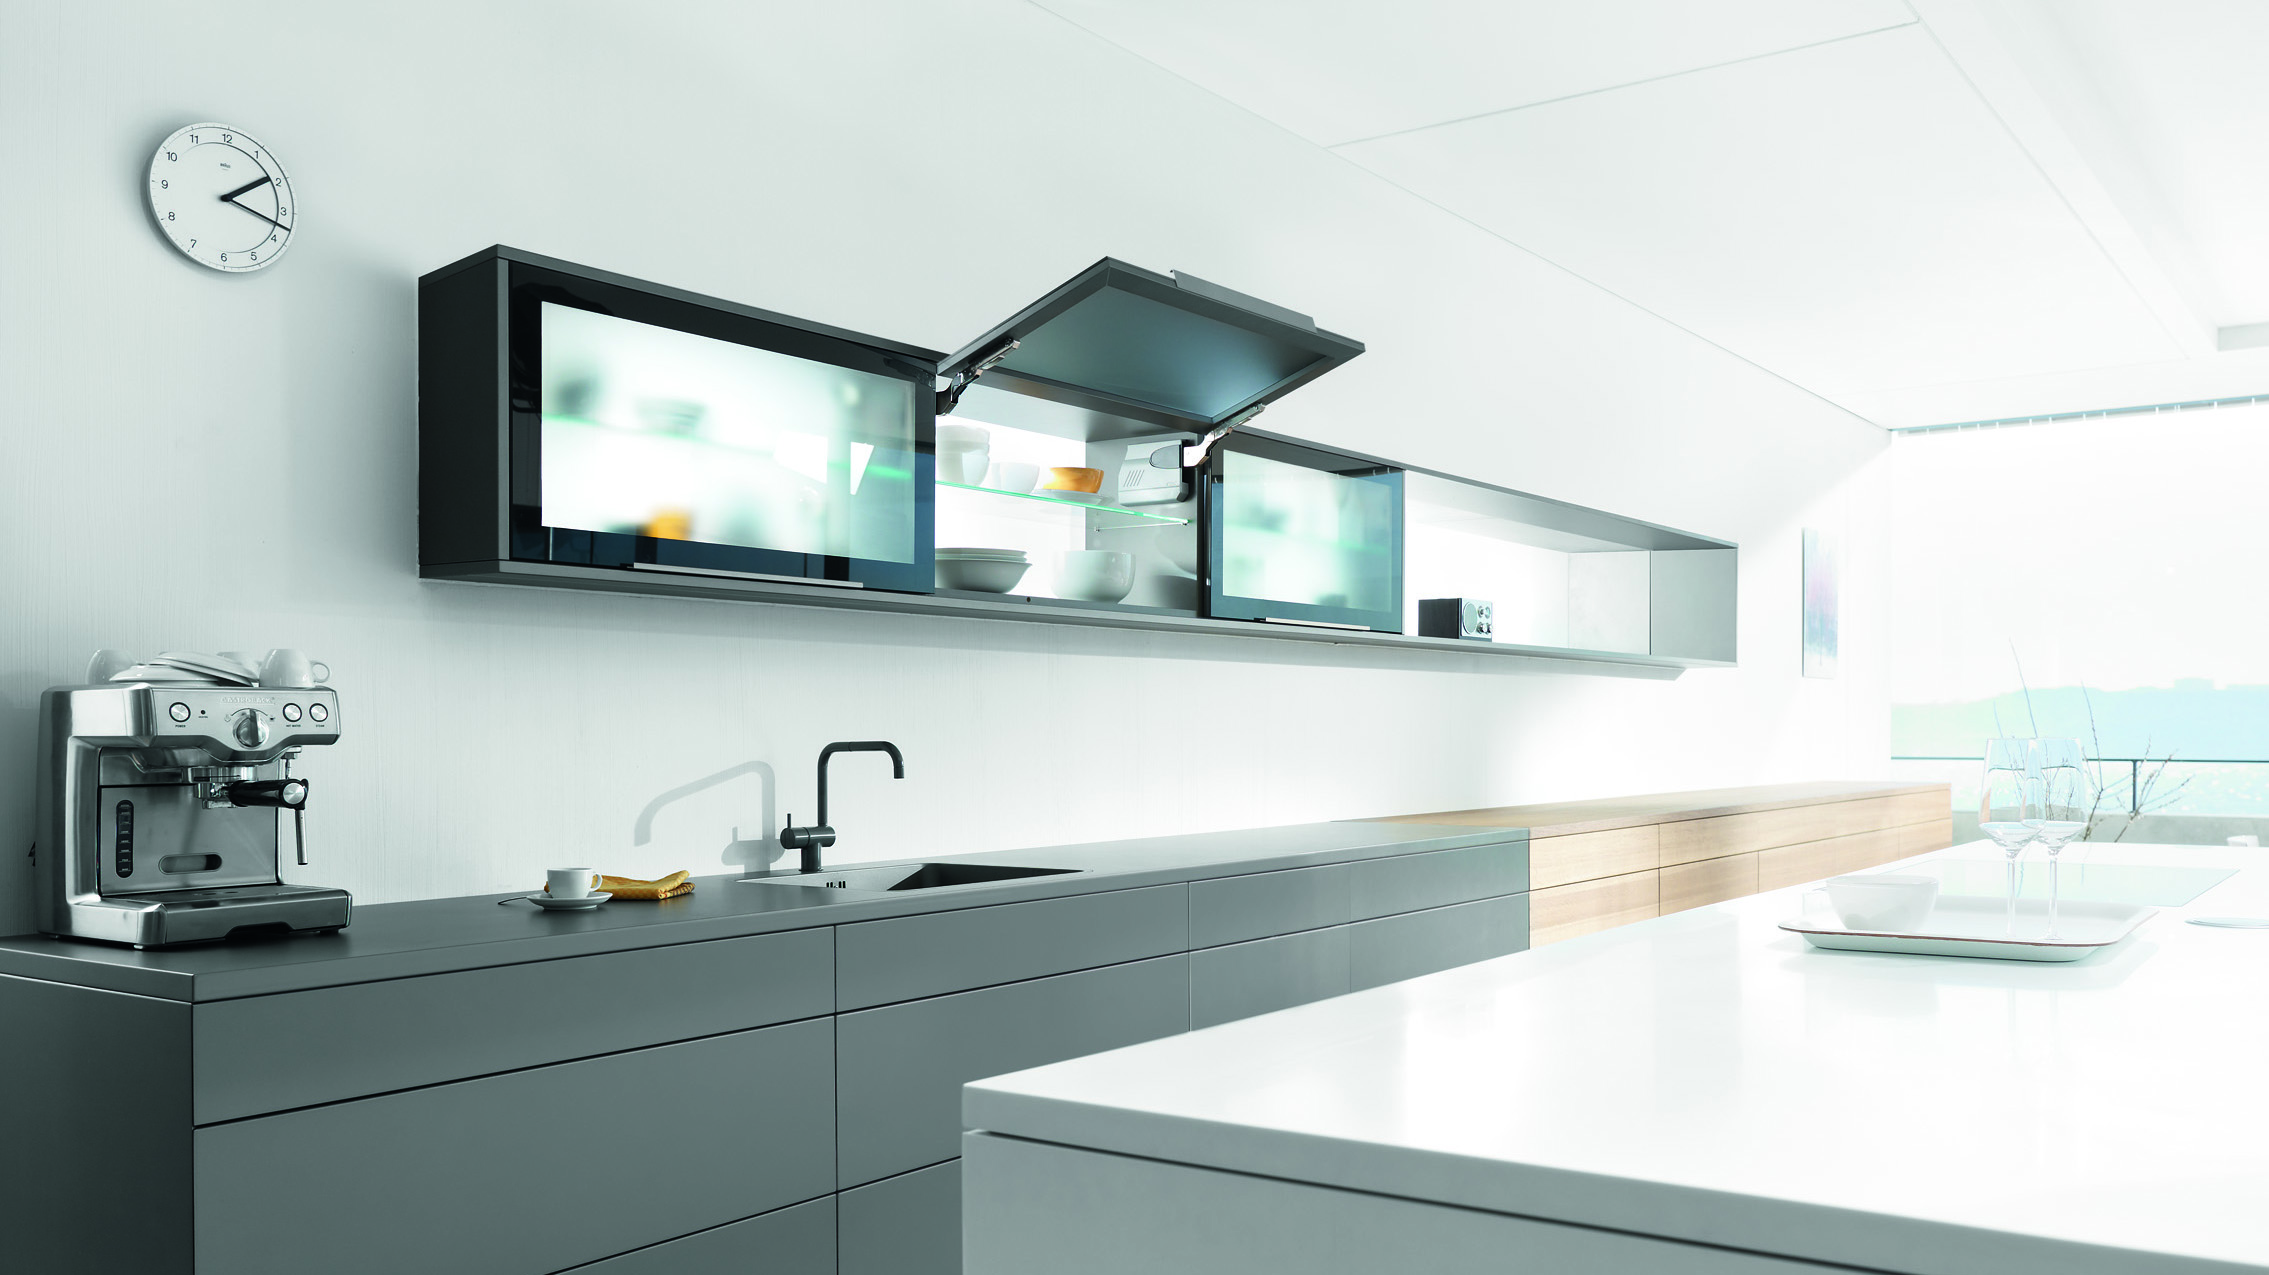 Blum meet a new audience at KBB |